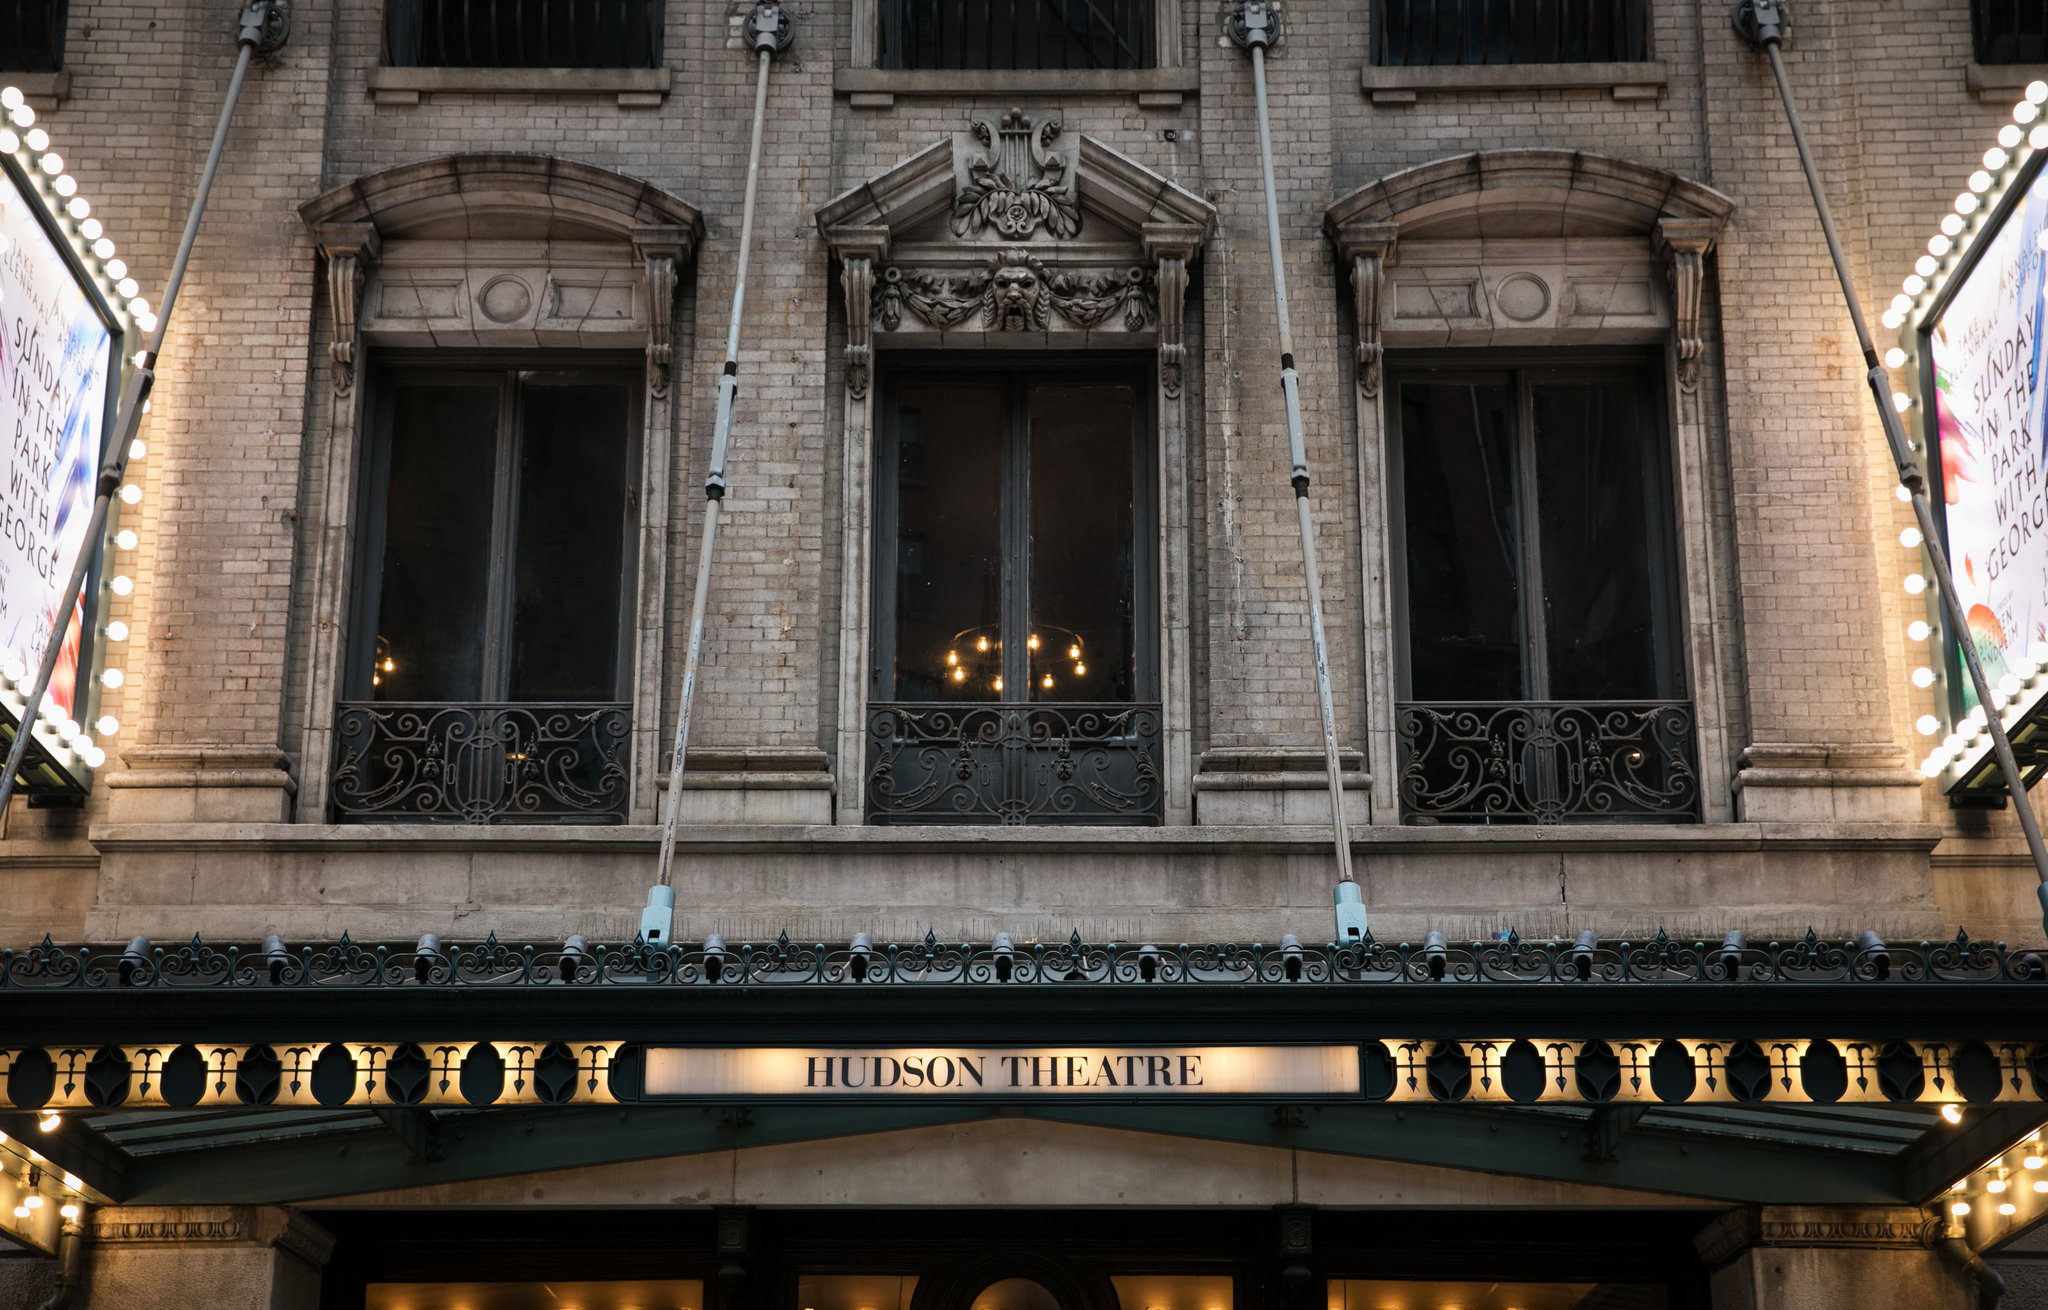 The exterior of the Hudson Theater on 44th Street.CreditTodd Heisler/The New York Times